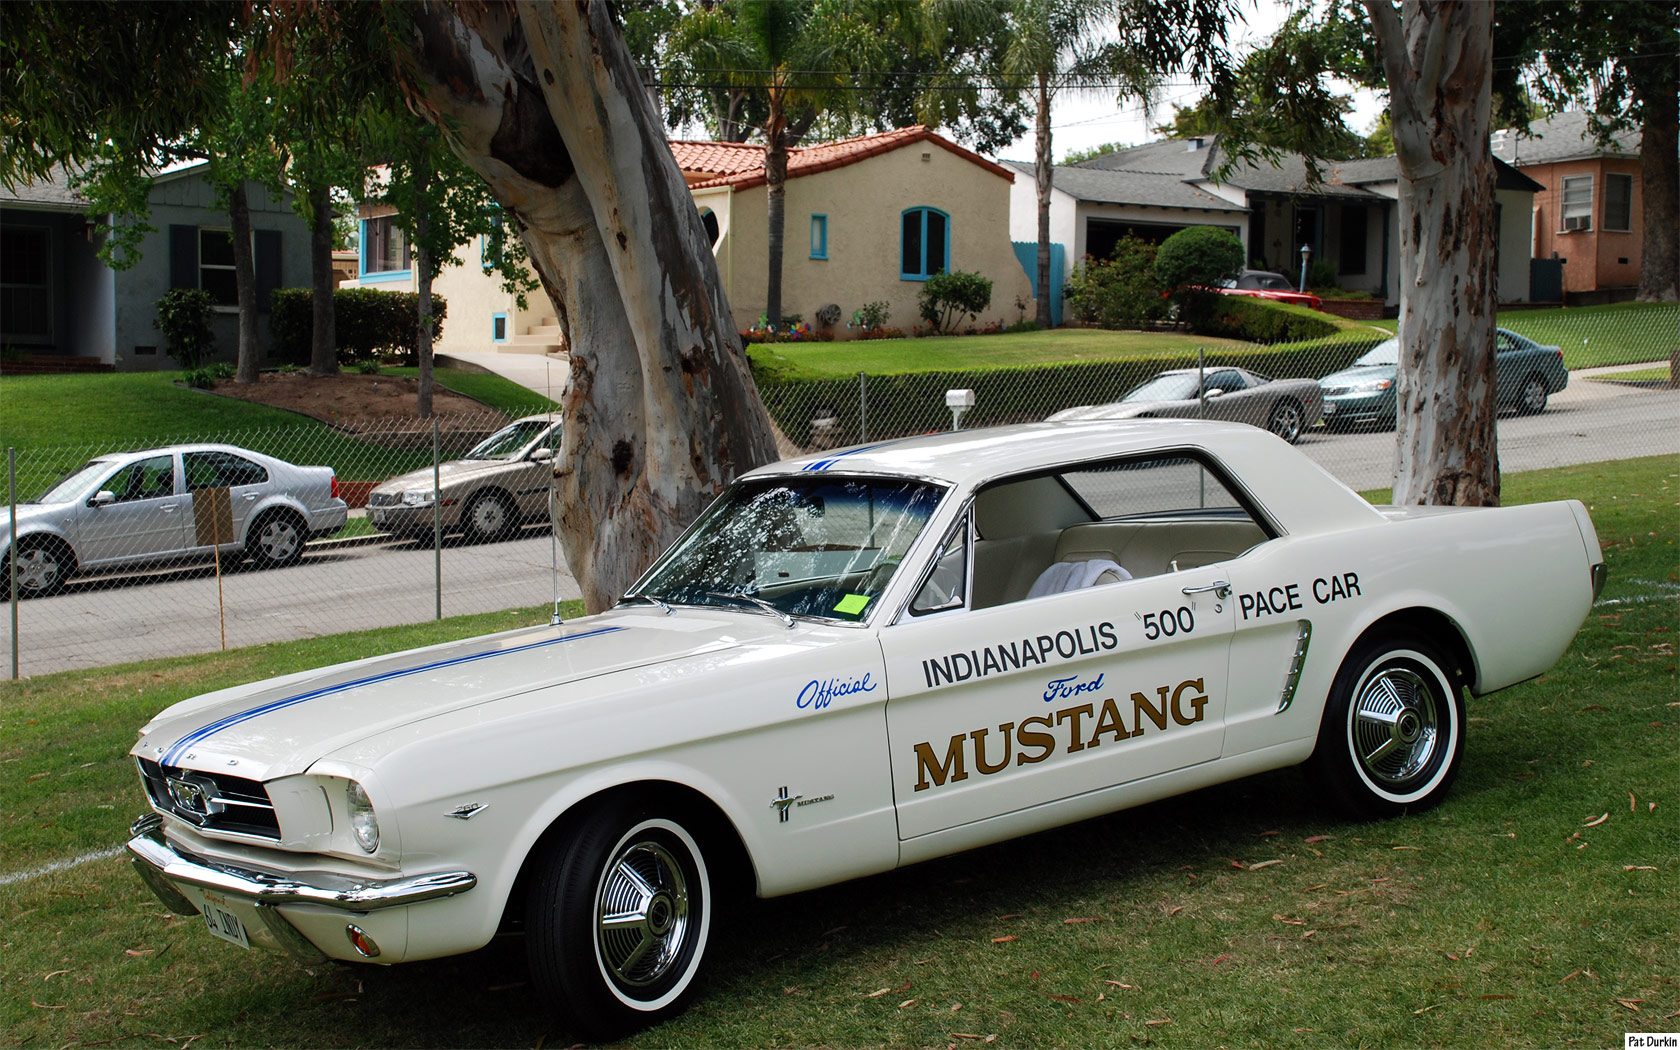 File:1964 Ford Mustang Pace Car - fvl.jpg - Wikipedia